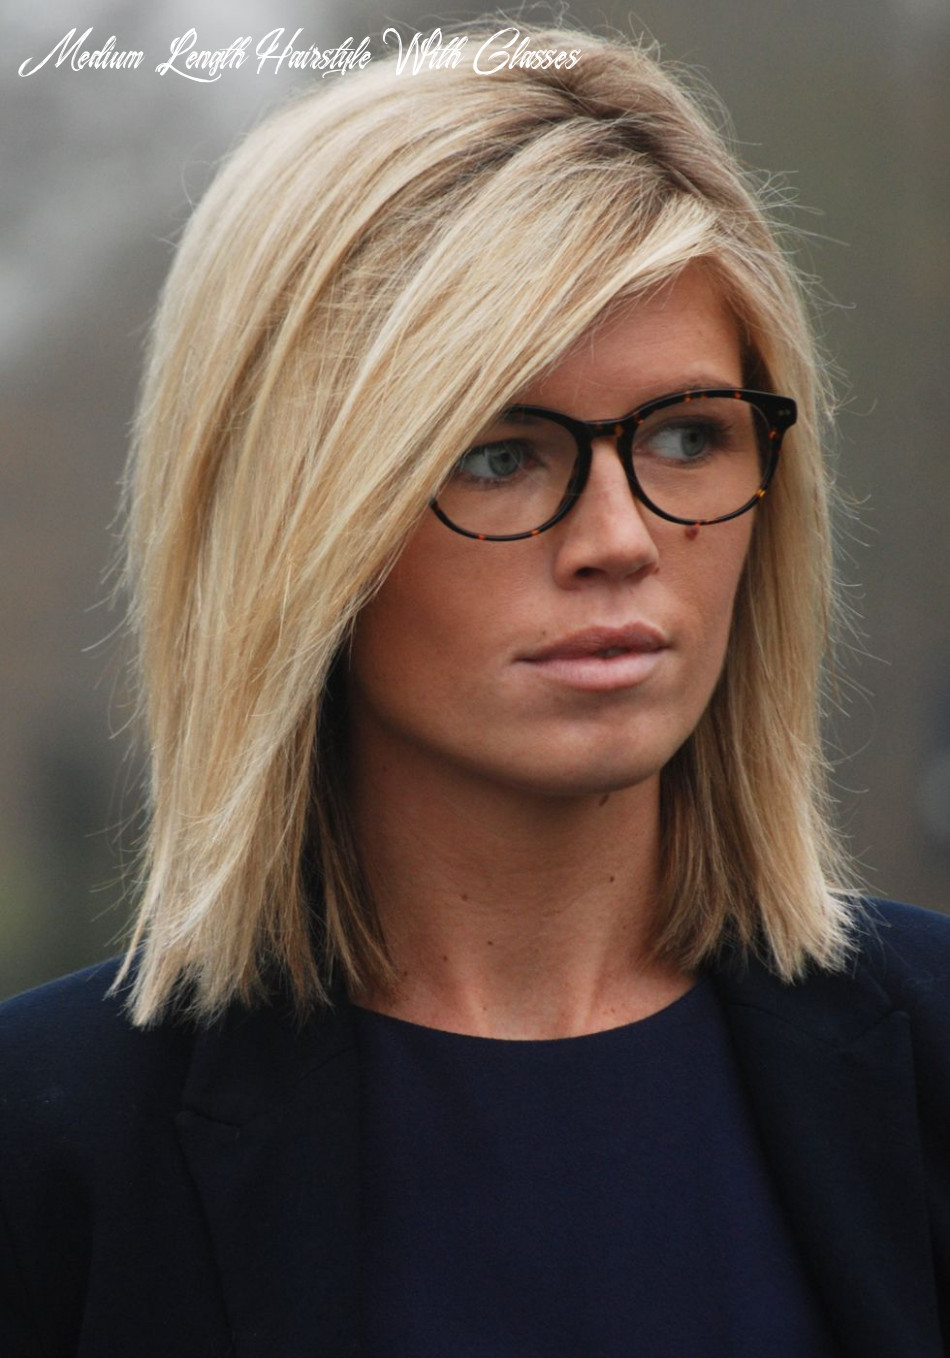 Pin on hair/make up medium length hairstyle with glasses